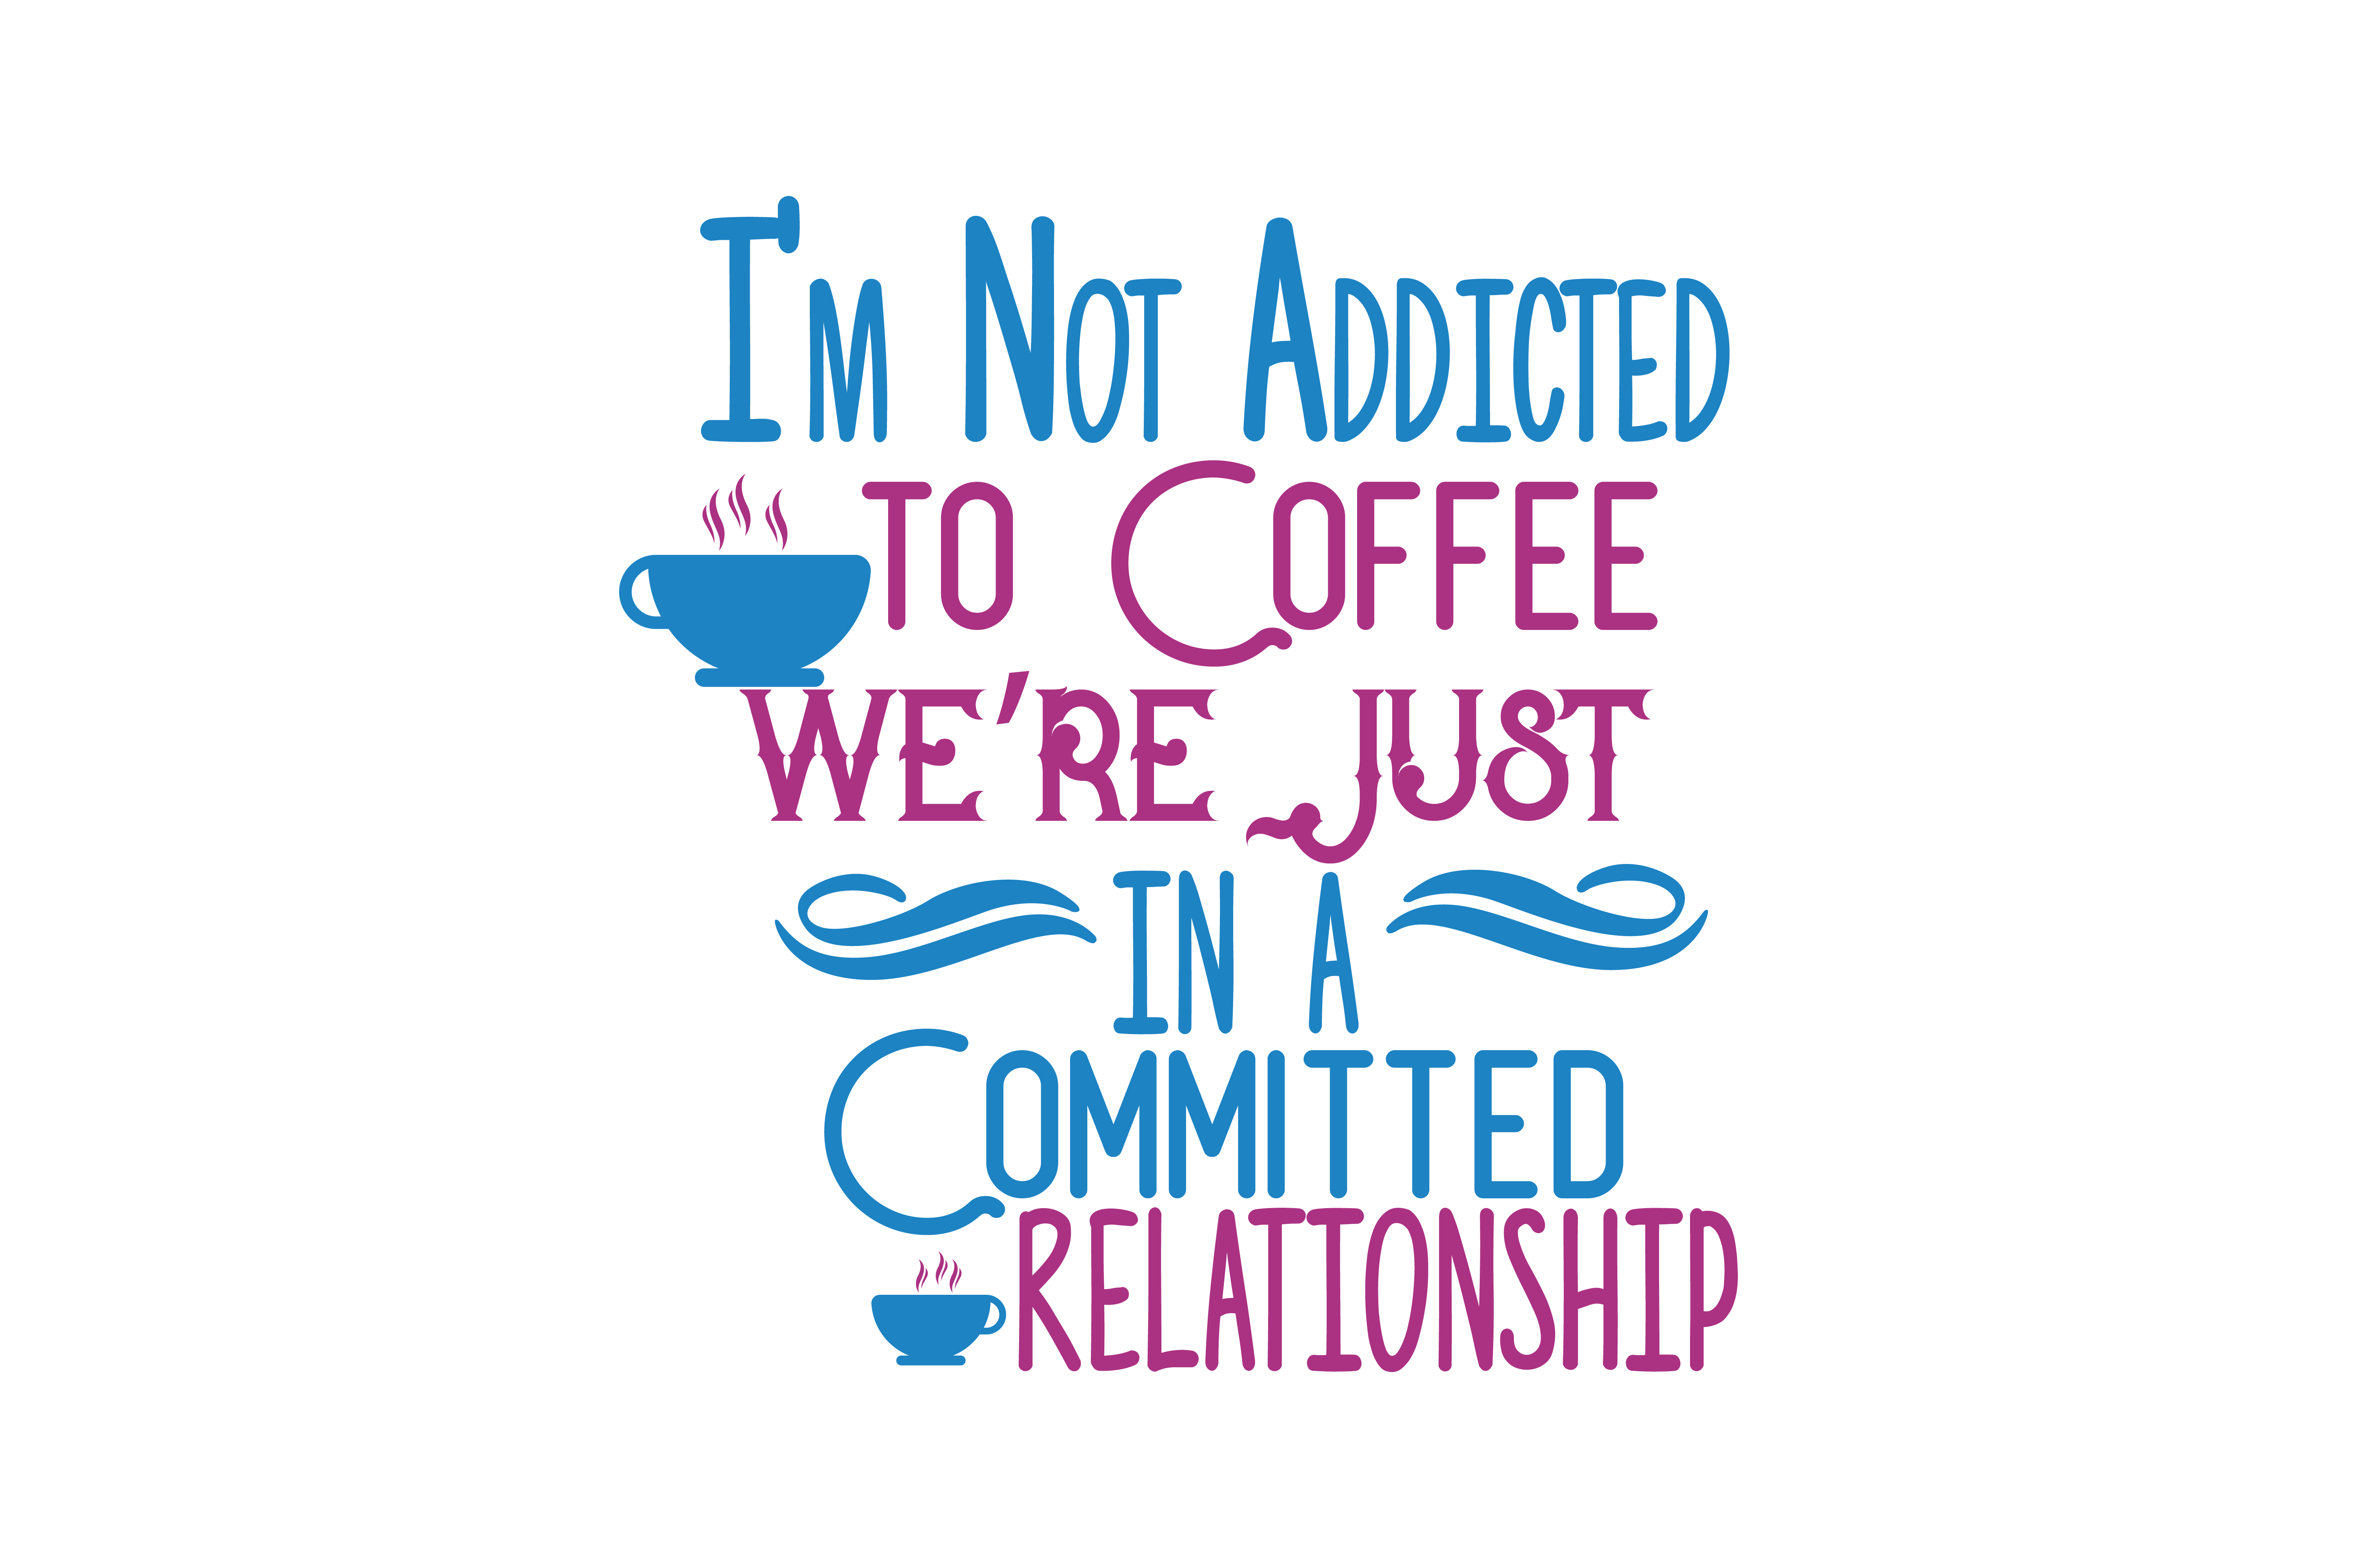 Download Free I M Not Addicted To Coffee We Re Just In A Committed Relationship for Cricut Explore, Silhouette and other cutting machines.